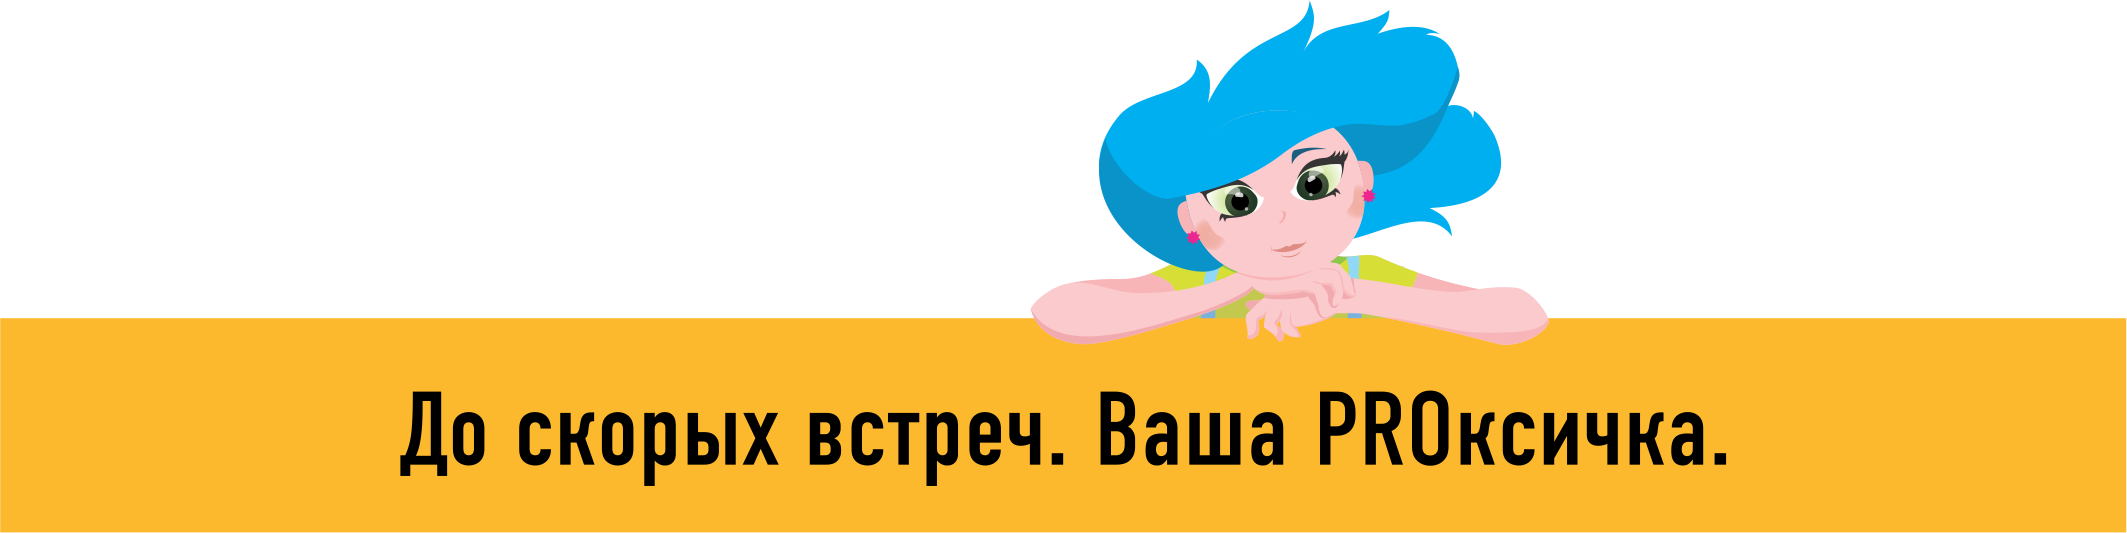 Эндинг PROксичка.png